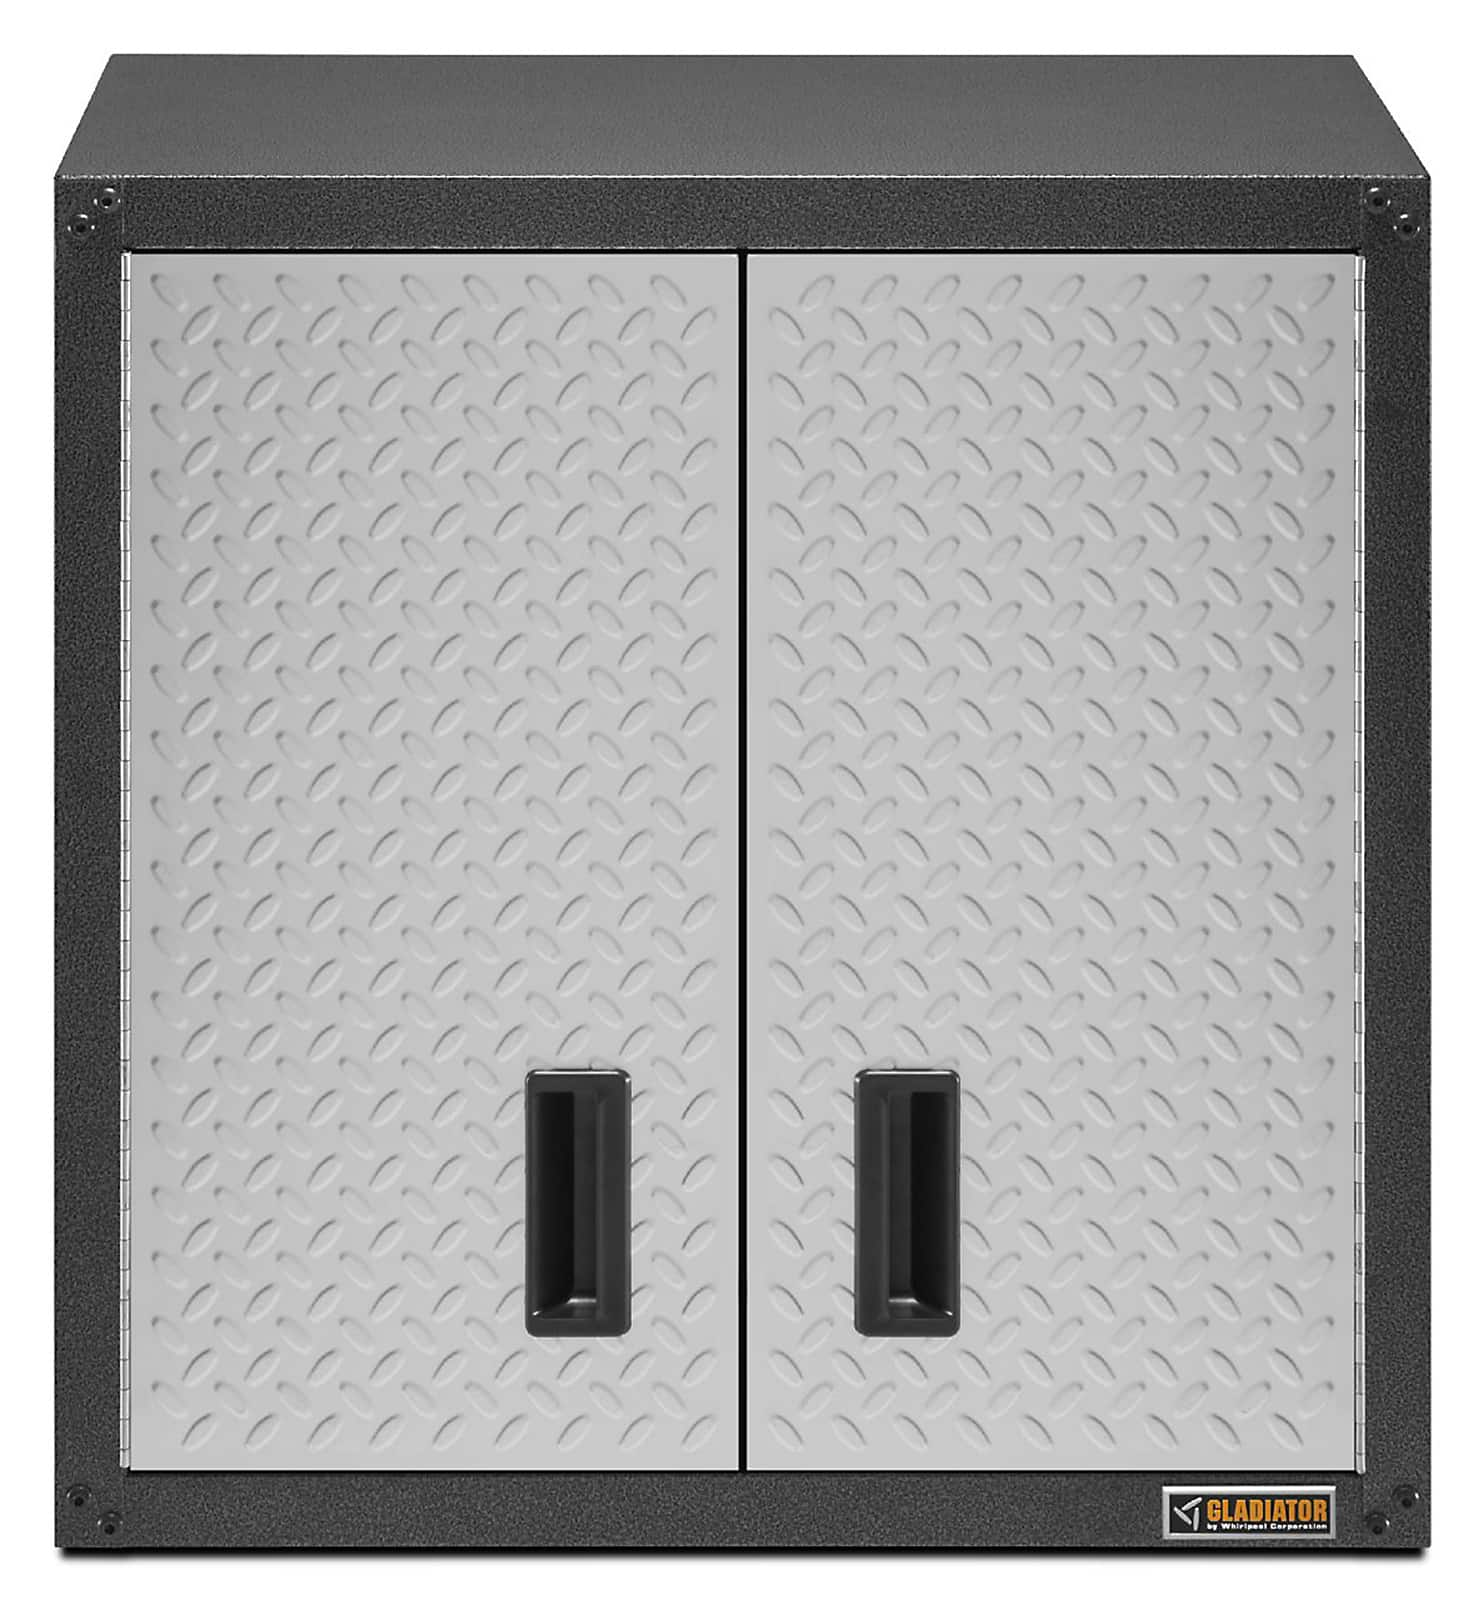 Gladiator Ready-To-Assemble 28 in. H x 28 in. W x 12 in. D Steel Garage Wall Cabinet in Hammered Granite $119 with $69.50 SYWR credit